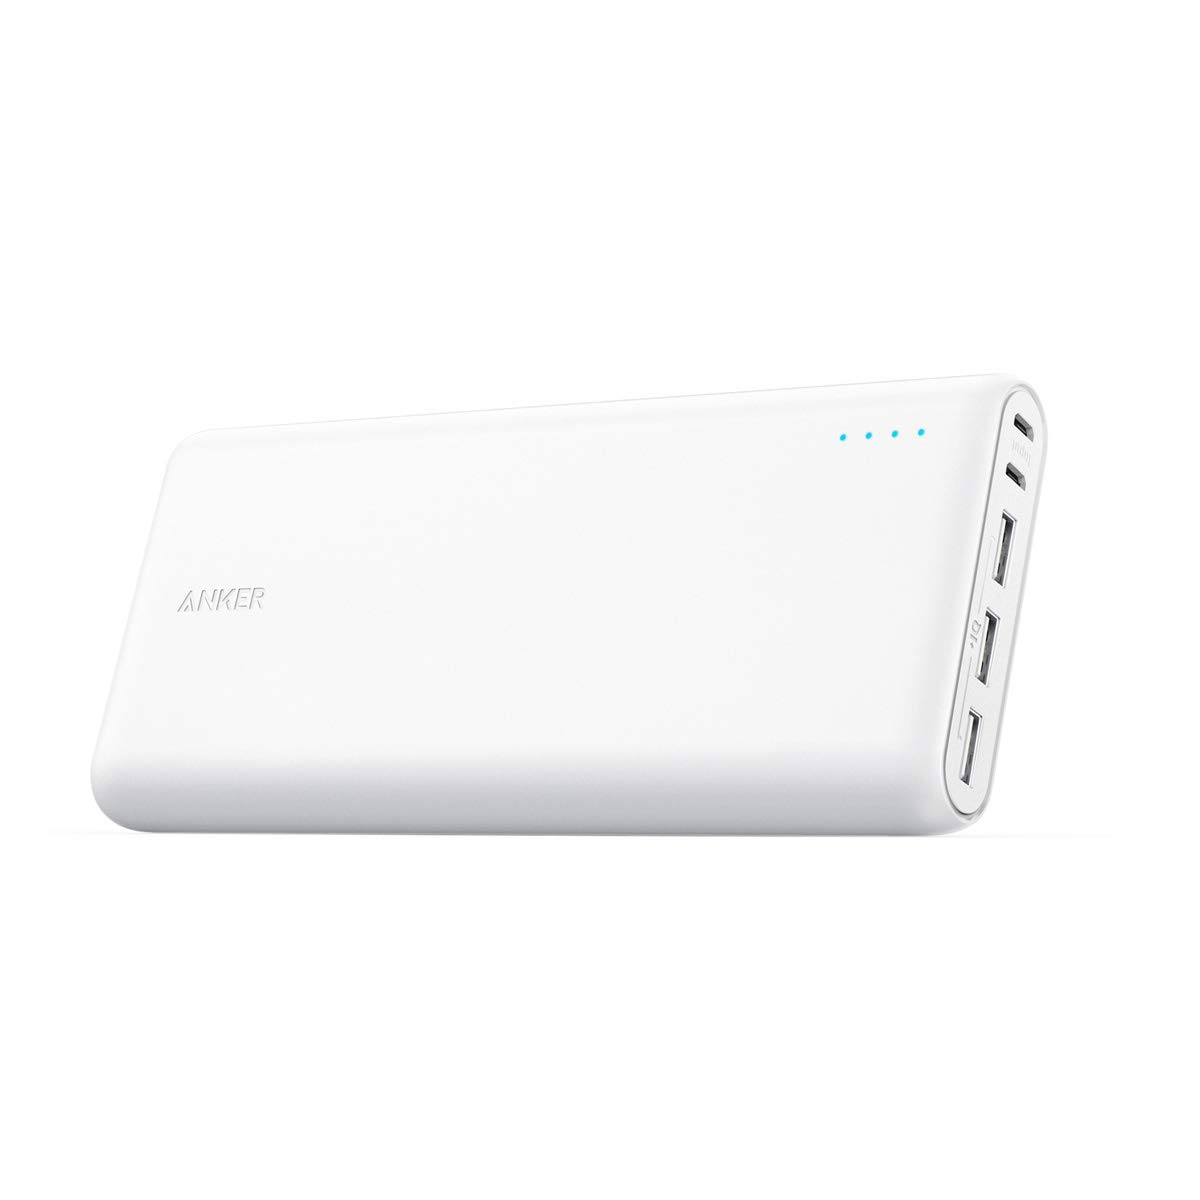 Anker PowerCore 26800 Portable Charger, 26800mAh External Battery with Dual Input Port and Double-Speed Recharging, 3 USB Ports for iPhone, iPad, Samsung Galaxy, Android and OtherDevices(Renewed) by Anker